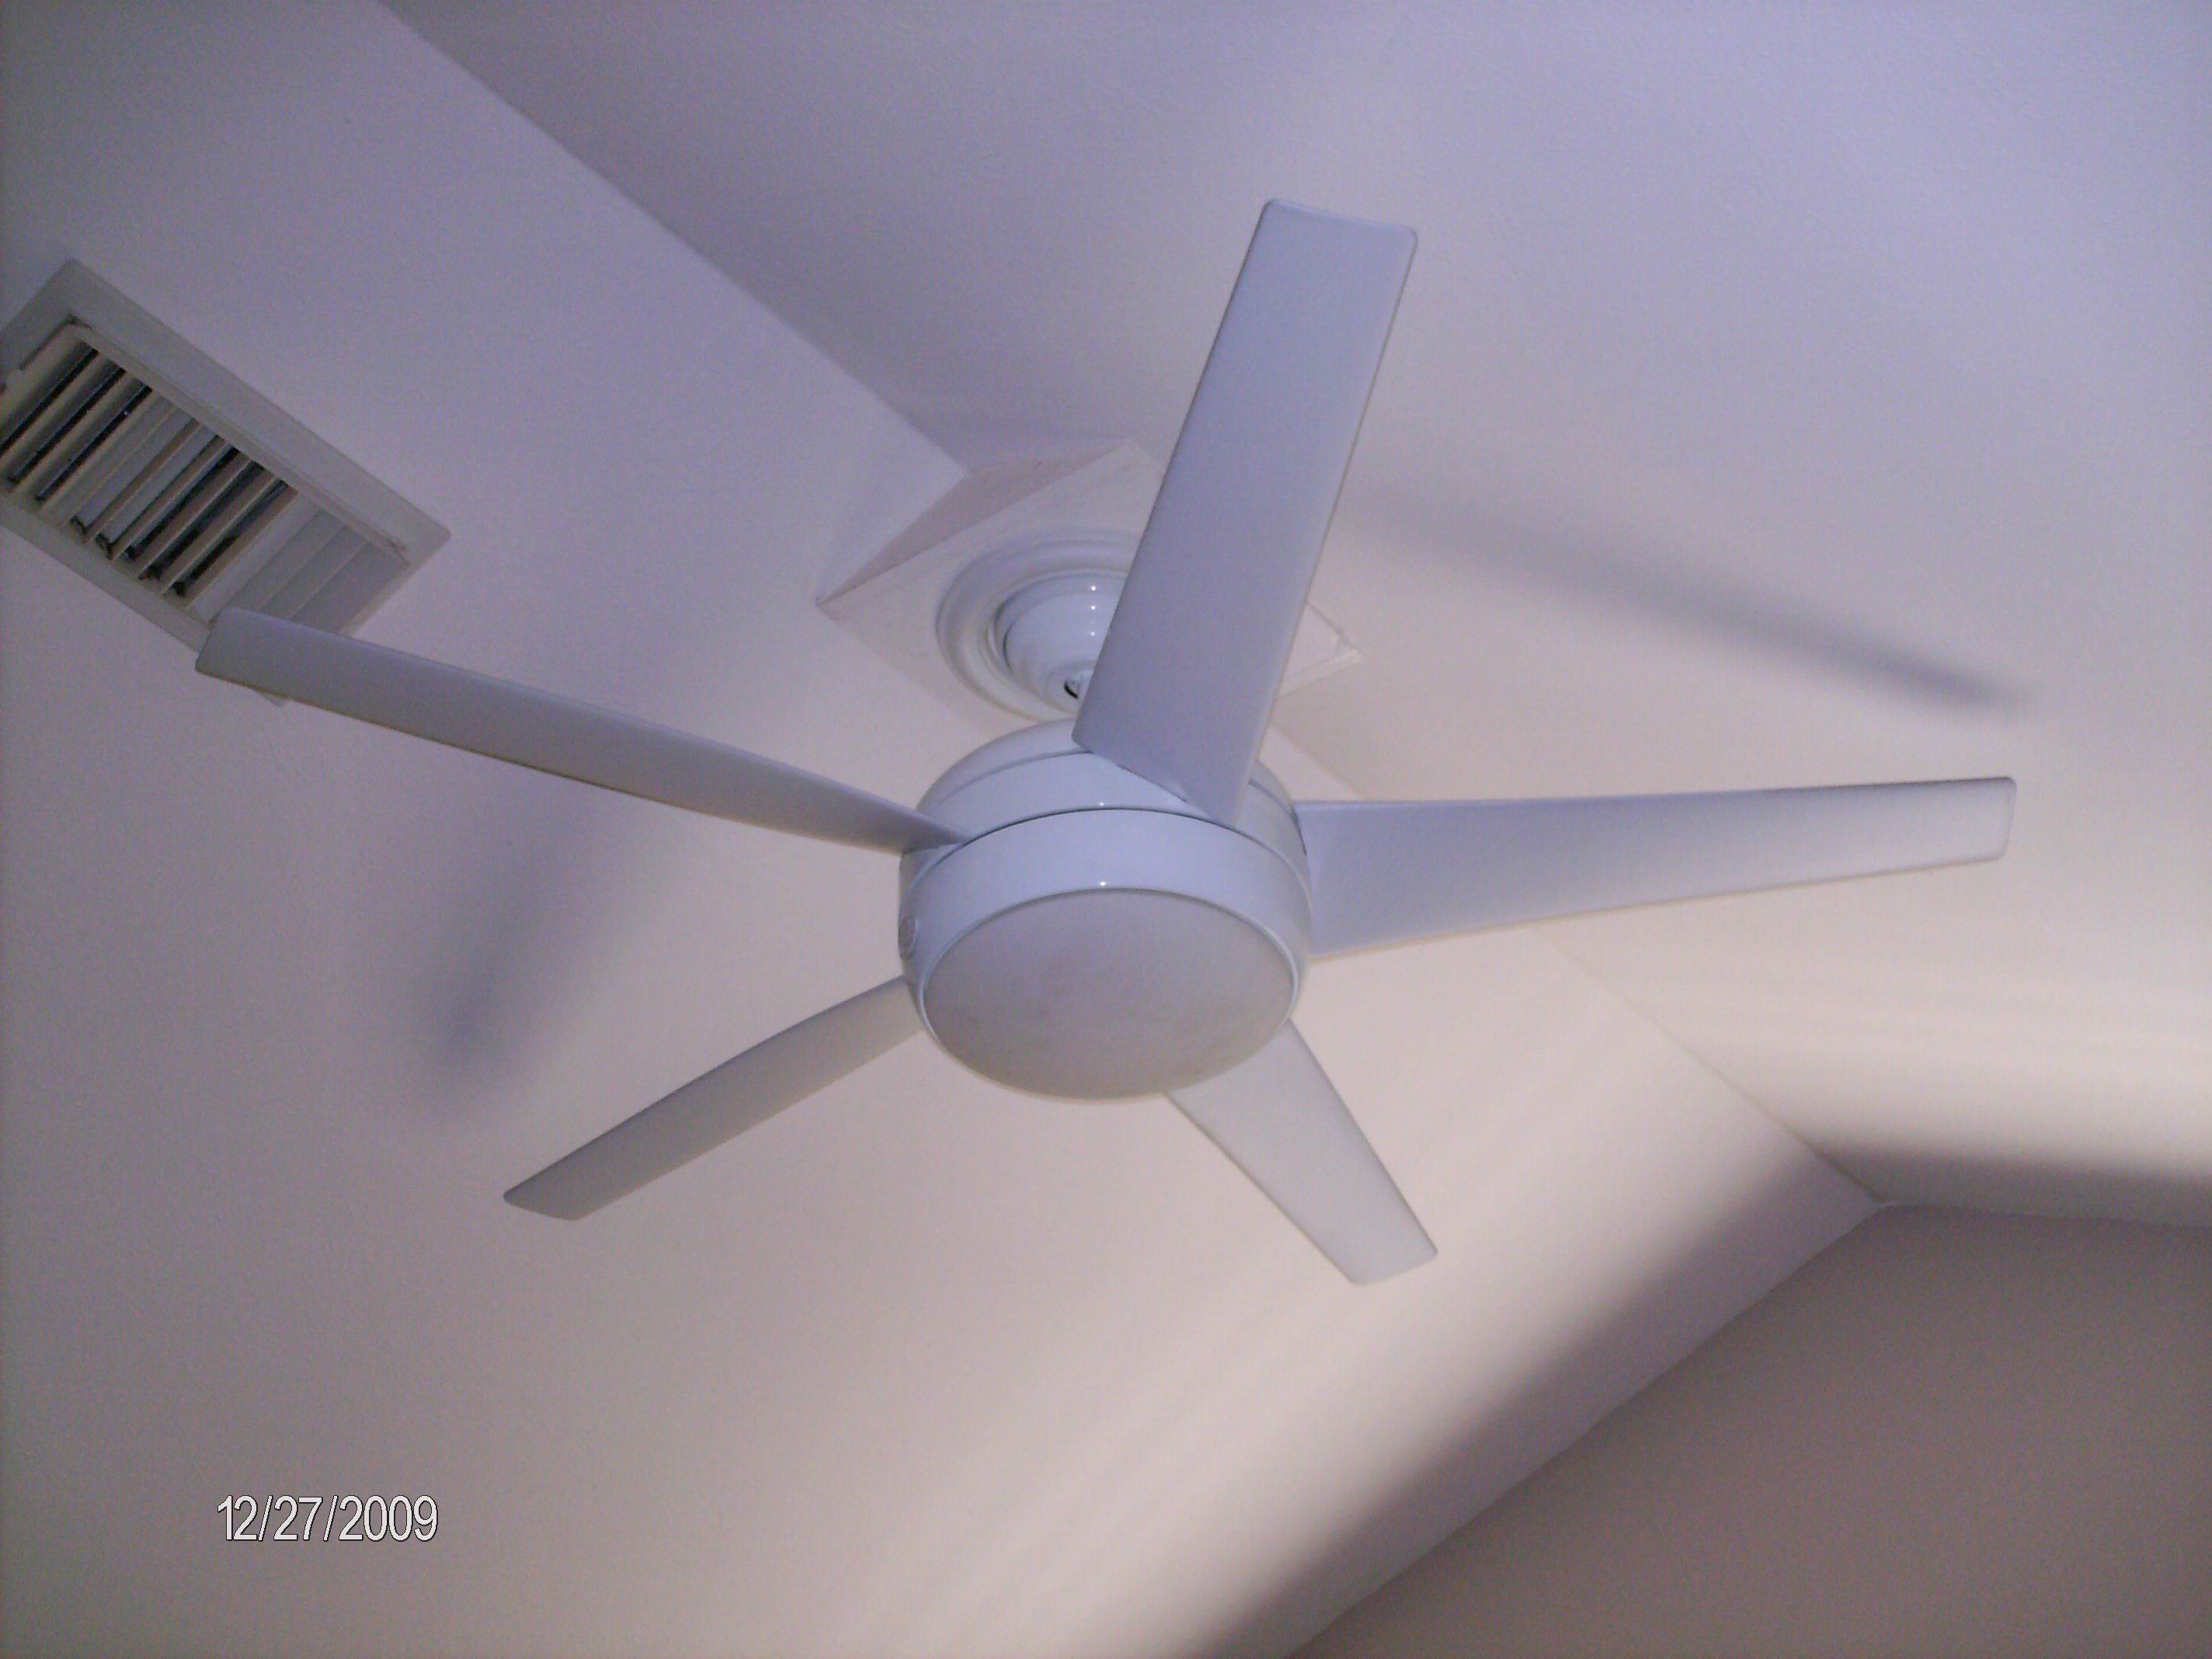 I have a hampton bay ceiling fan how do i change the light bulb i graphic aloadofball Images